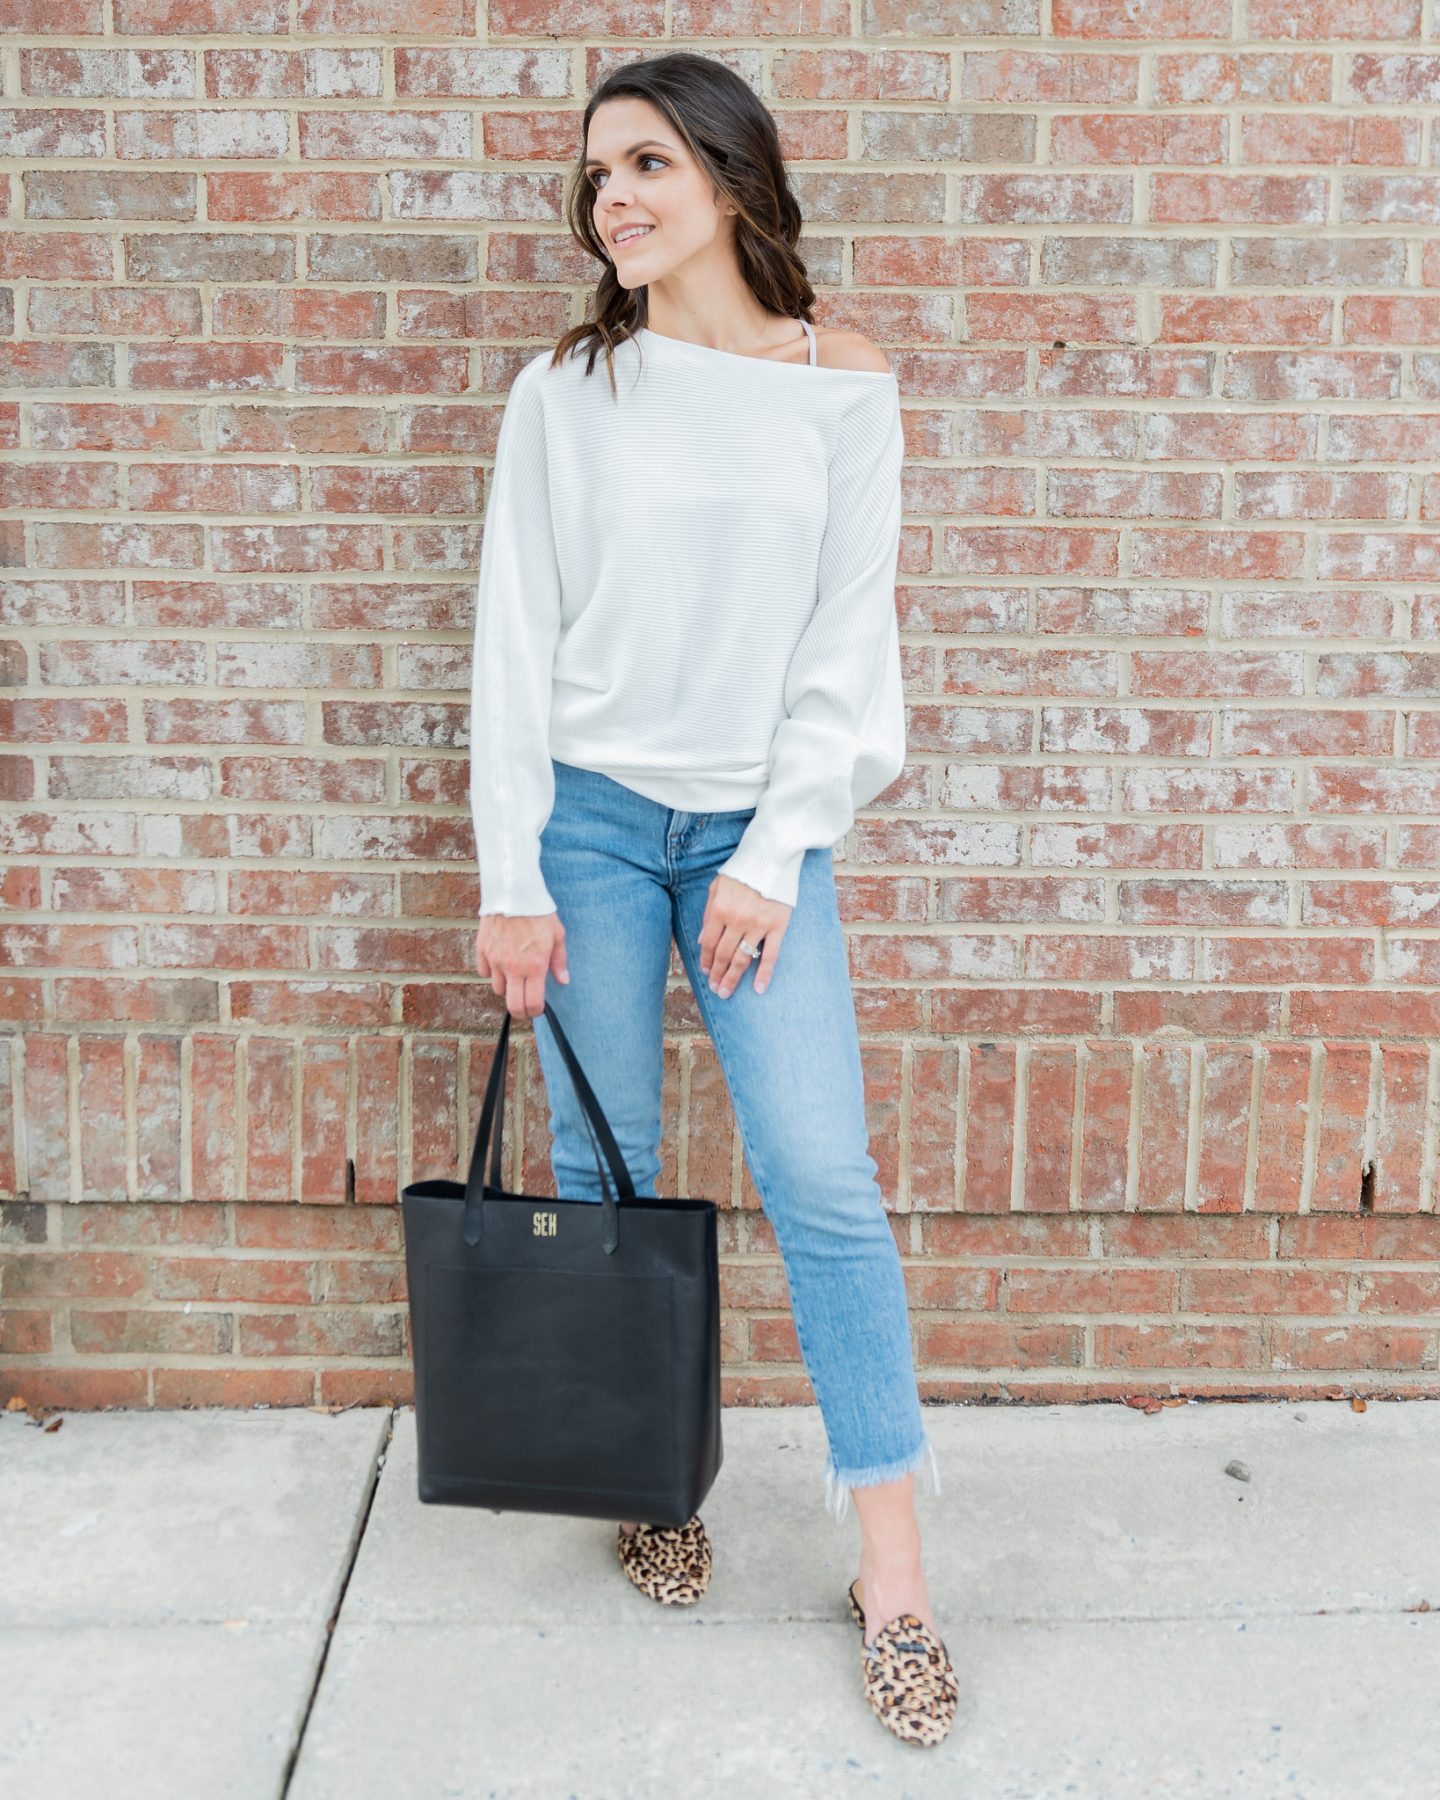 Recent Amazon Fall fashion buys - September edit